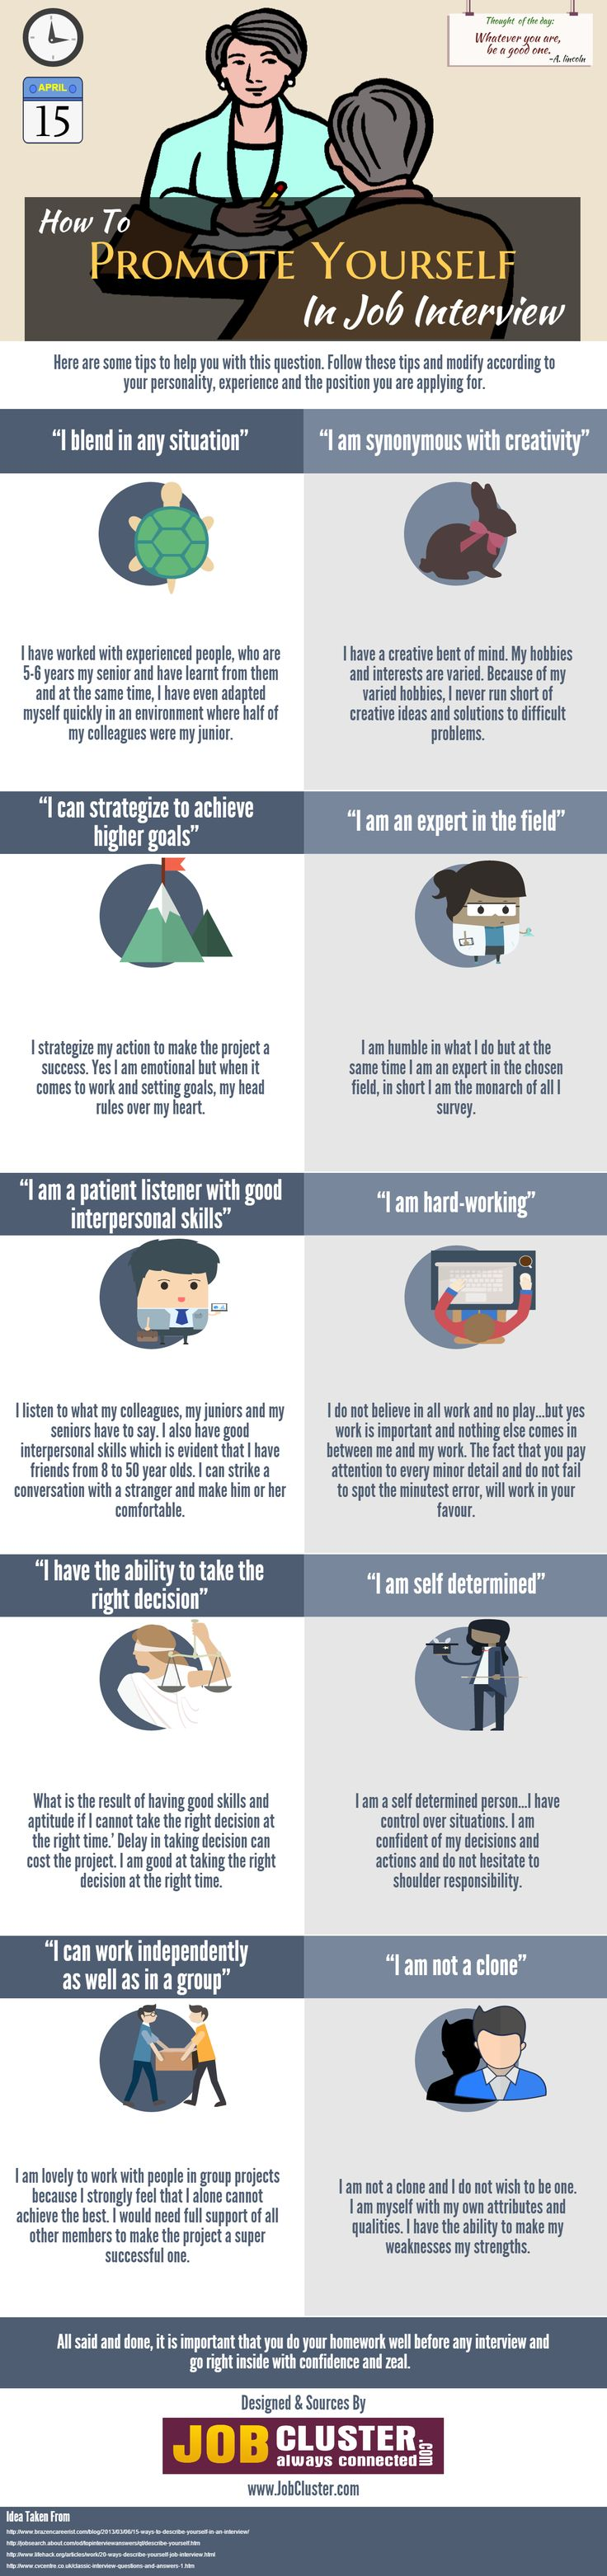 self promotion in job interview infographic - The Best Job Interview Tips You Can Get